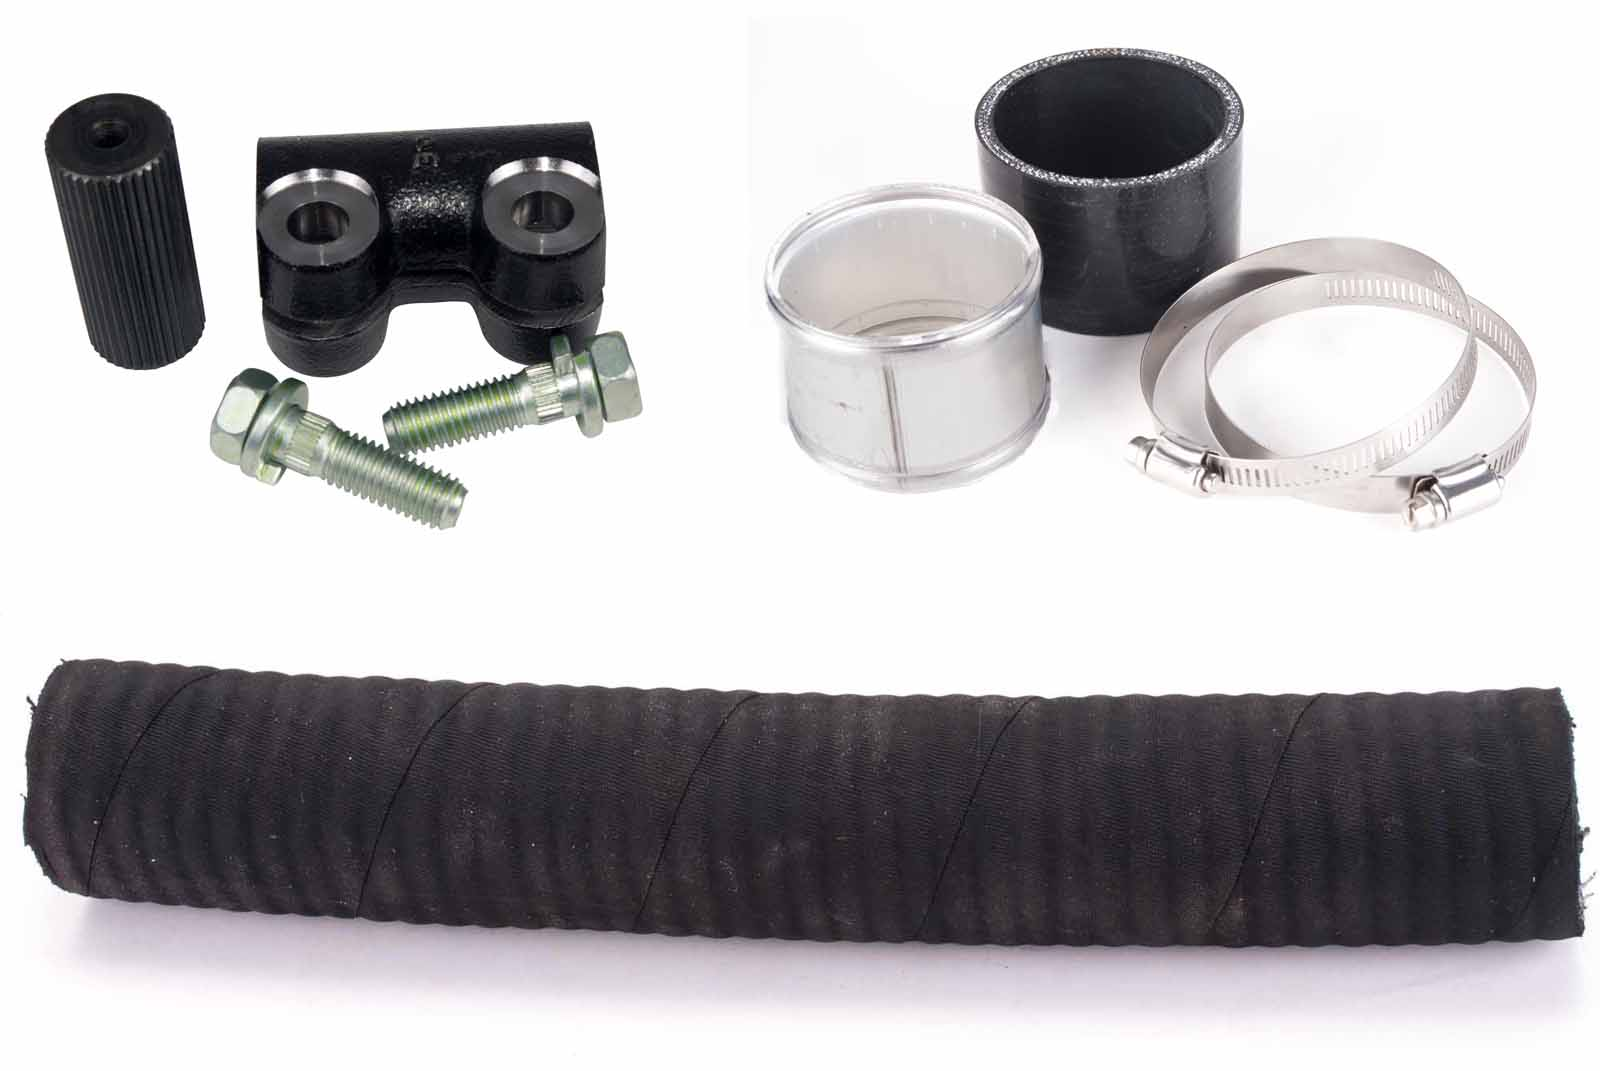 VMN offers air inlet, fuel-filler, and steering extensions for your Hilux.